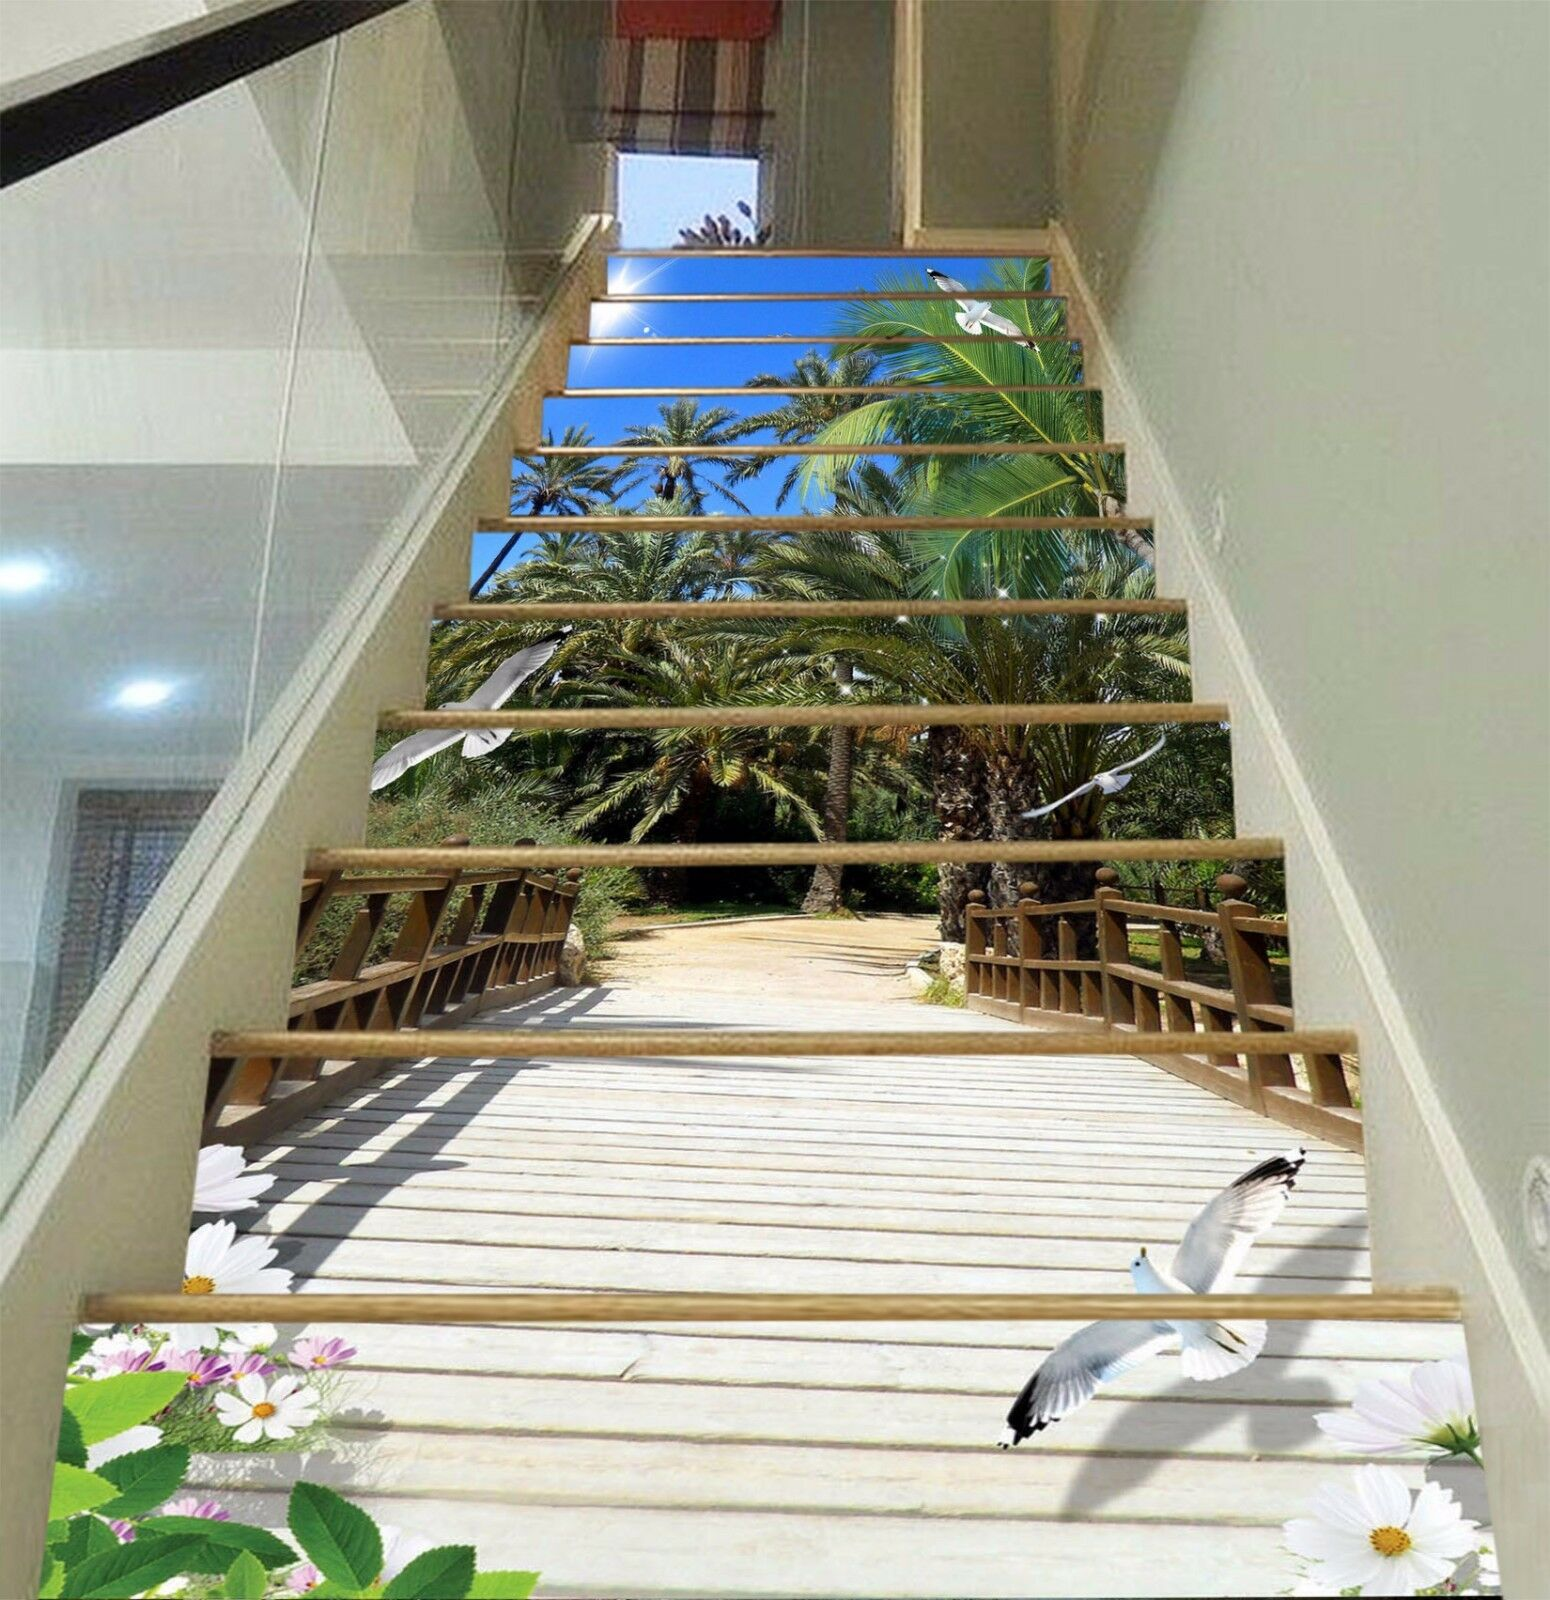 3D Coconut tree 367 Stair Risers Decoration Photo Mural Vinyl Decal Wallpaper UK